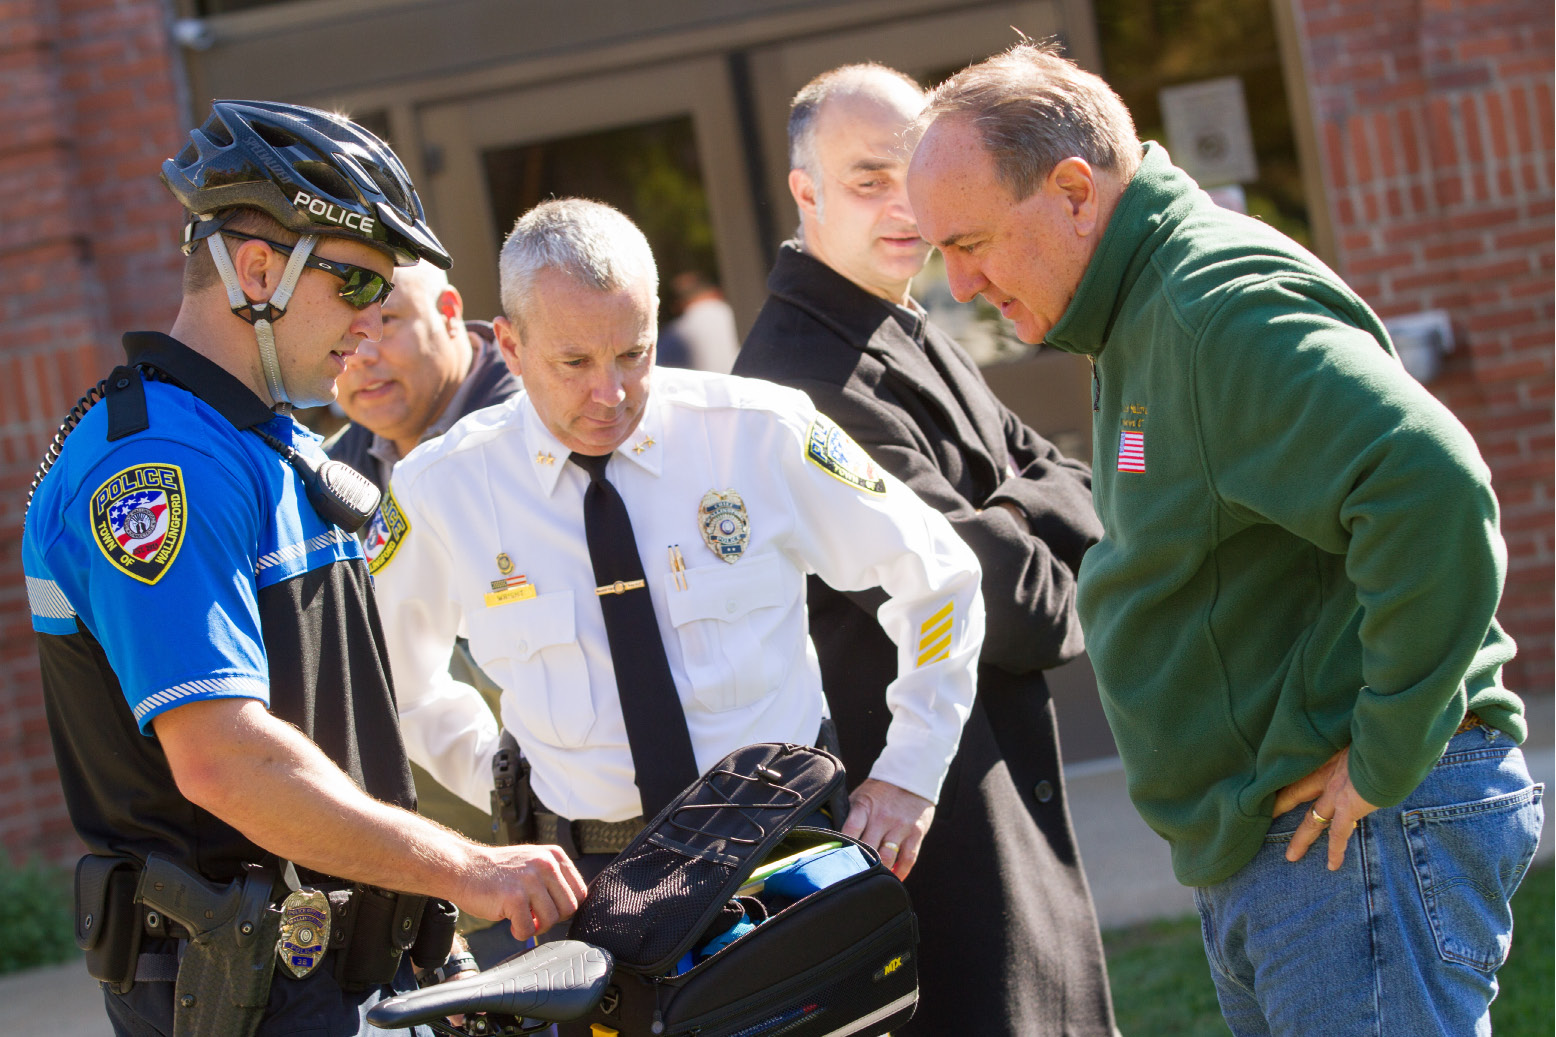 Officer Coleman Turner talks about a new bicycle with Police Chief William Wright and Councilor John Sullivan on Thursday, Oct. 15. The police department recently launched a bike program, giving officers the ability to patrol areas on a bicycle. | Eric Vo / Record-Journal